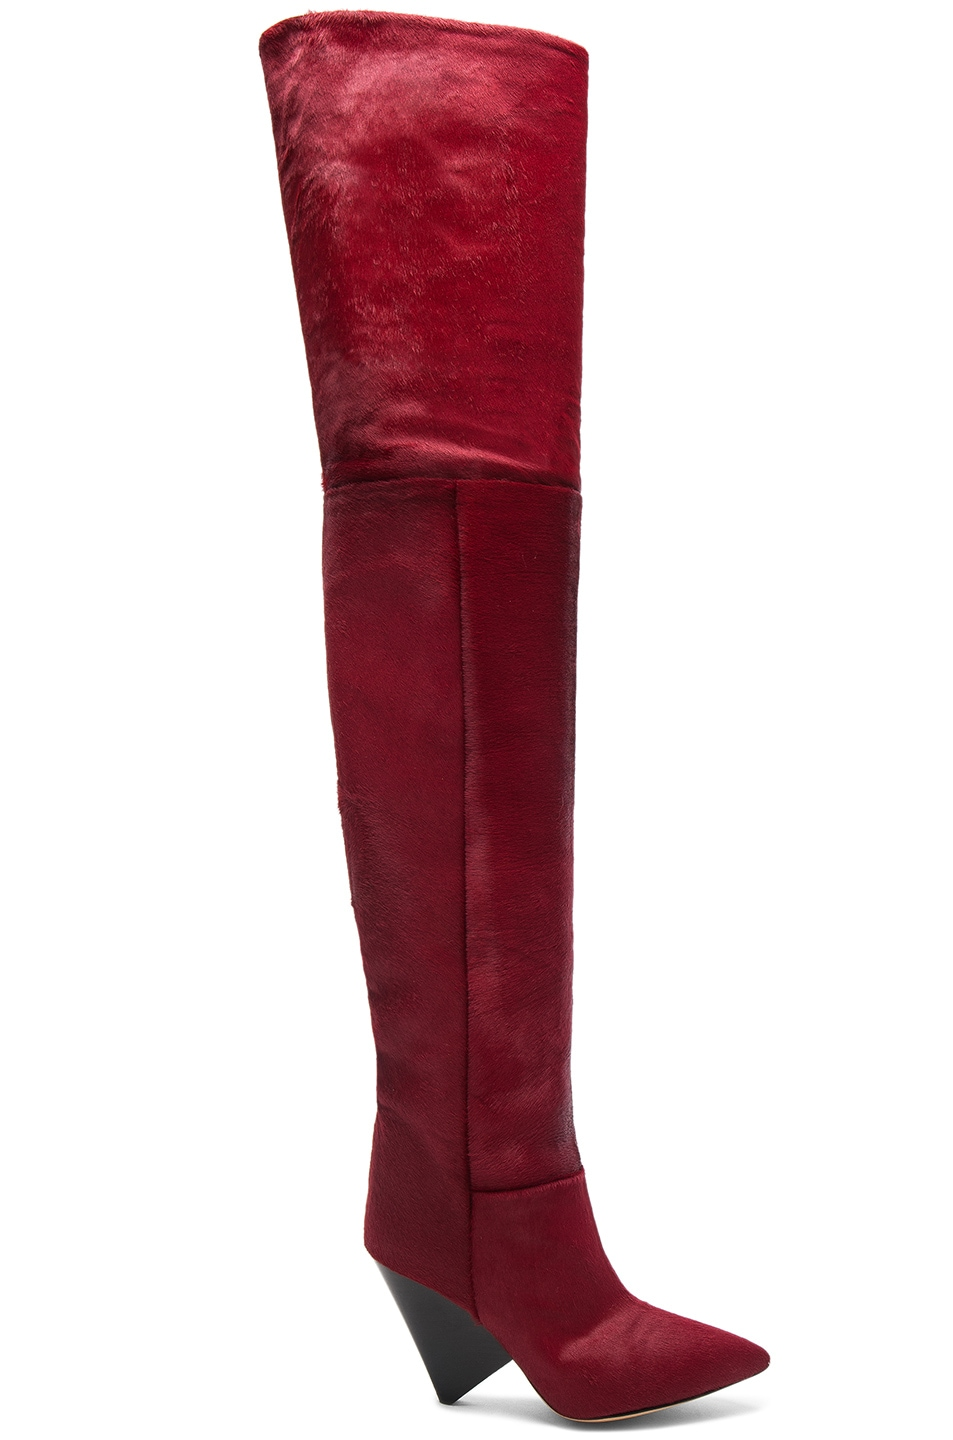 0ddda0f6c47 Image 1 of Isabel Marant Calf Hair Lostynn Thigh High Boots in Red